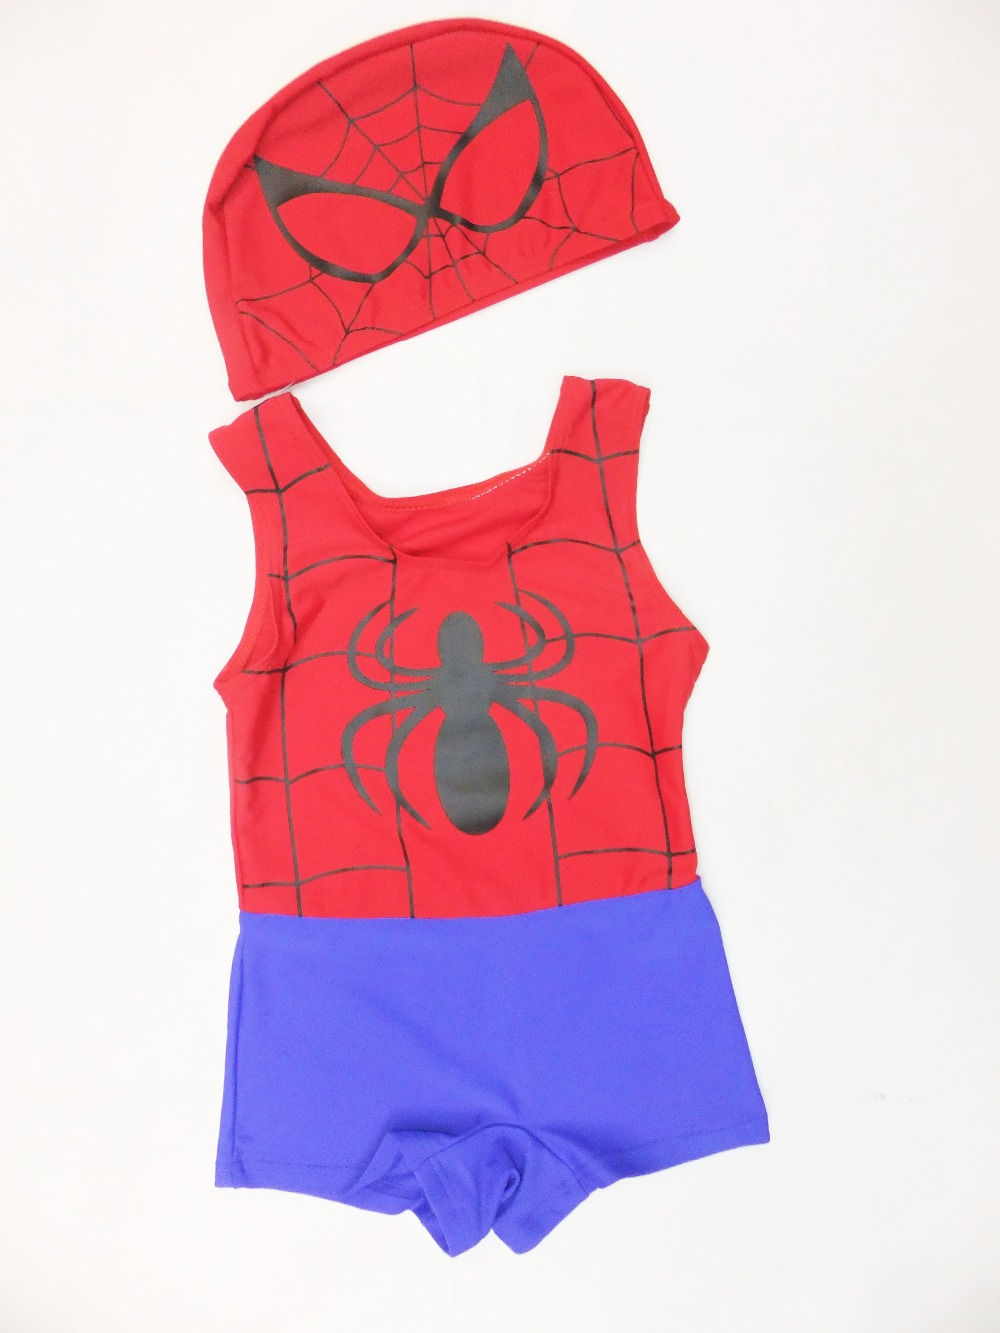 2- 6 years boy spider-man beach shorts/bathing suit,kid trunks,baby spider-man Prevent bask in clothes